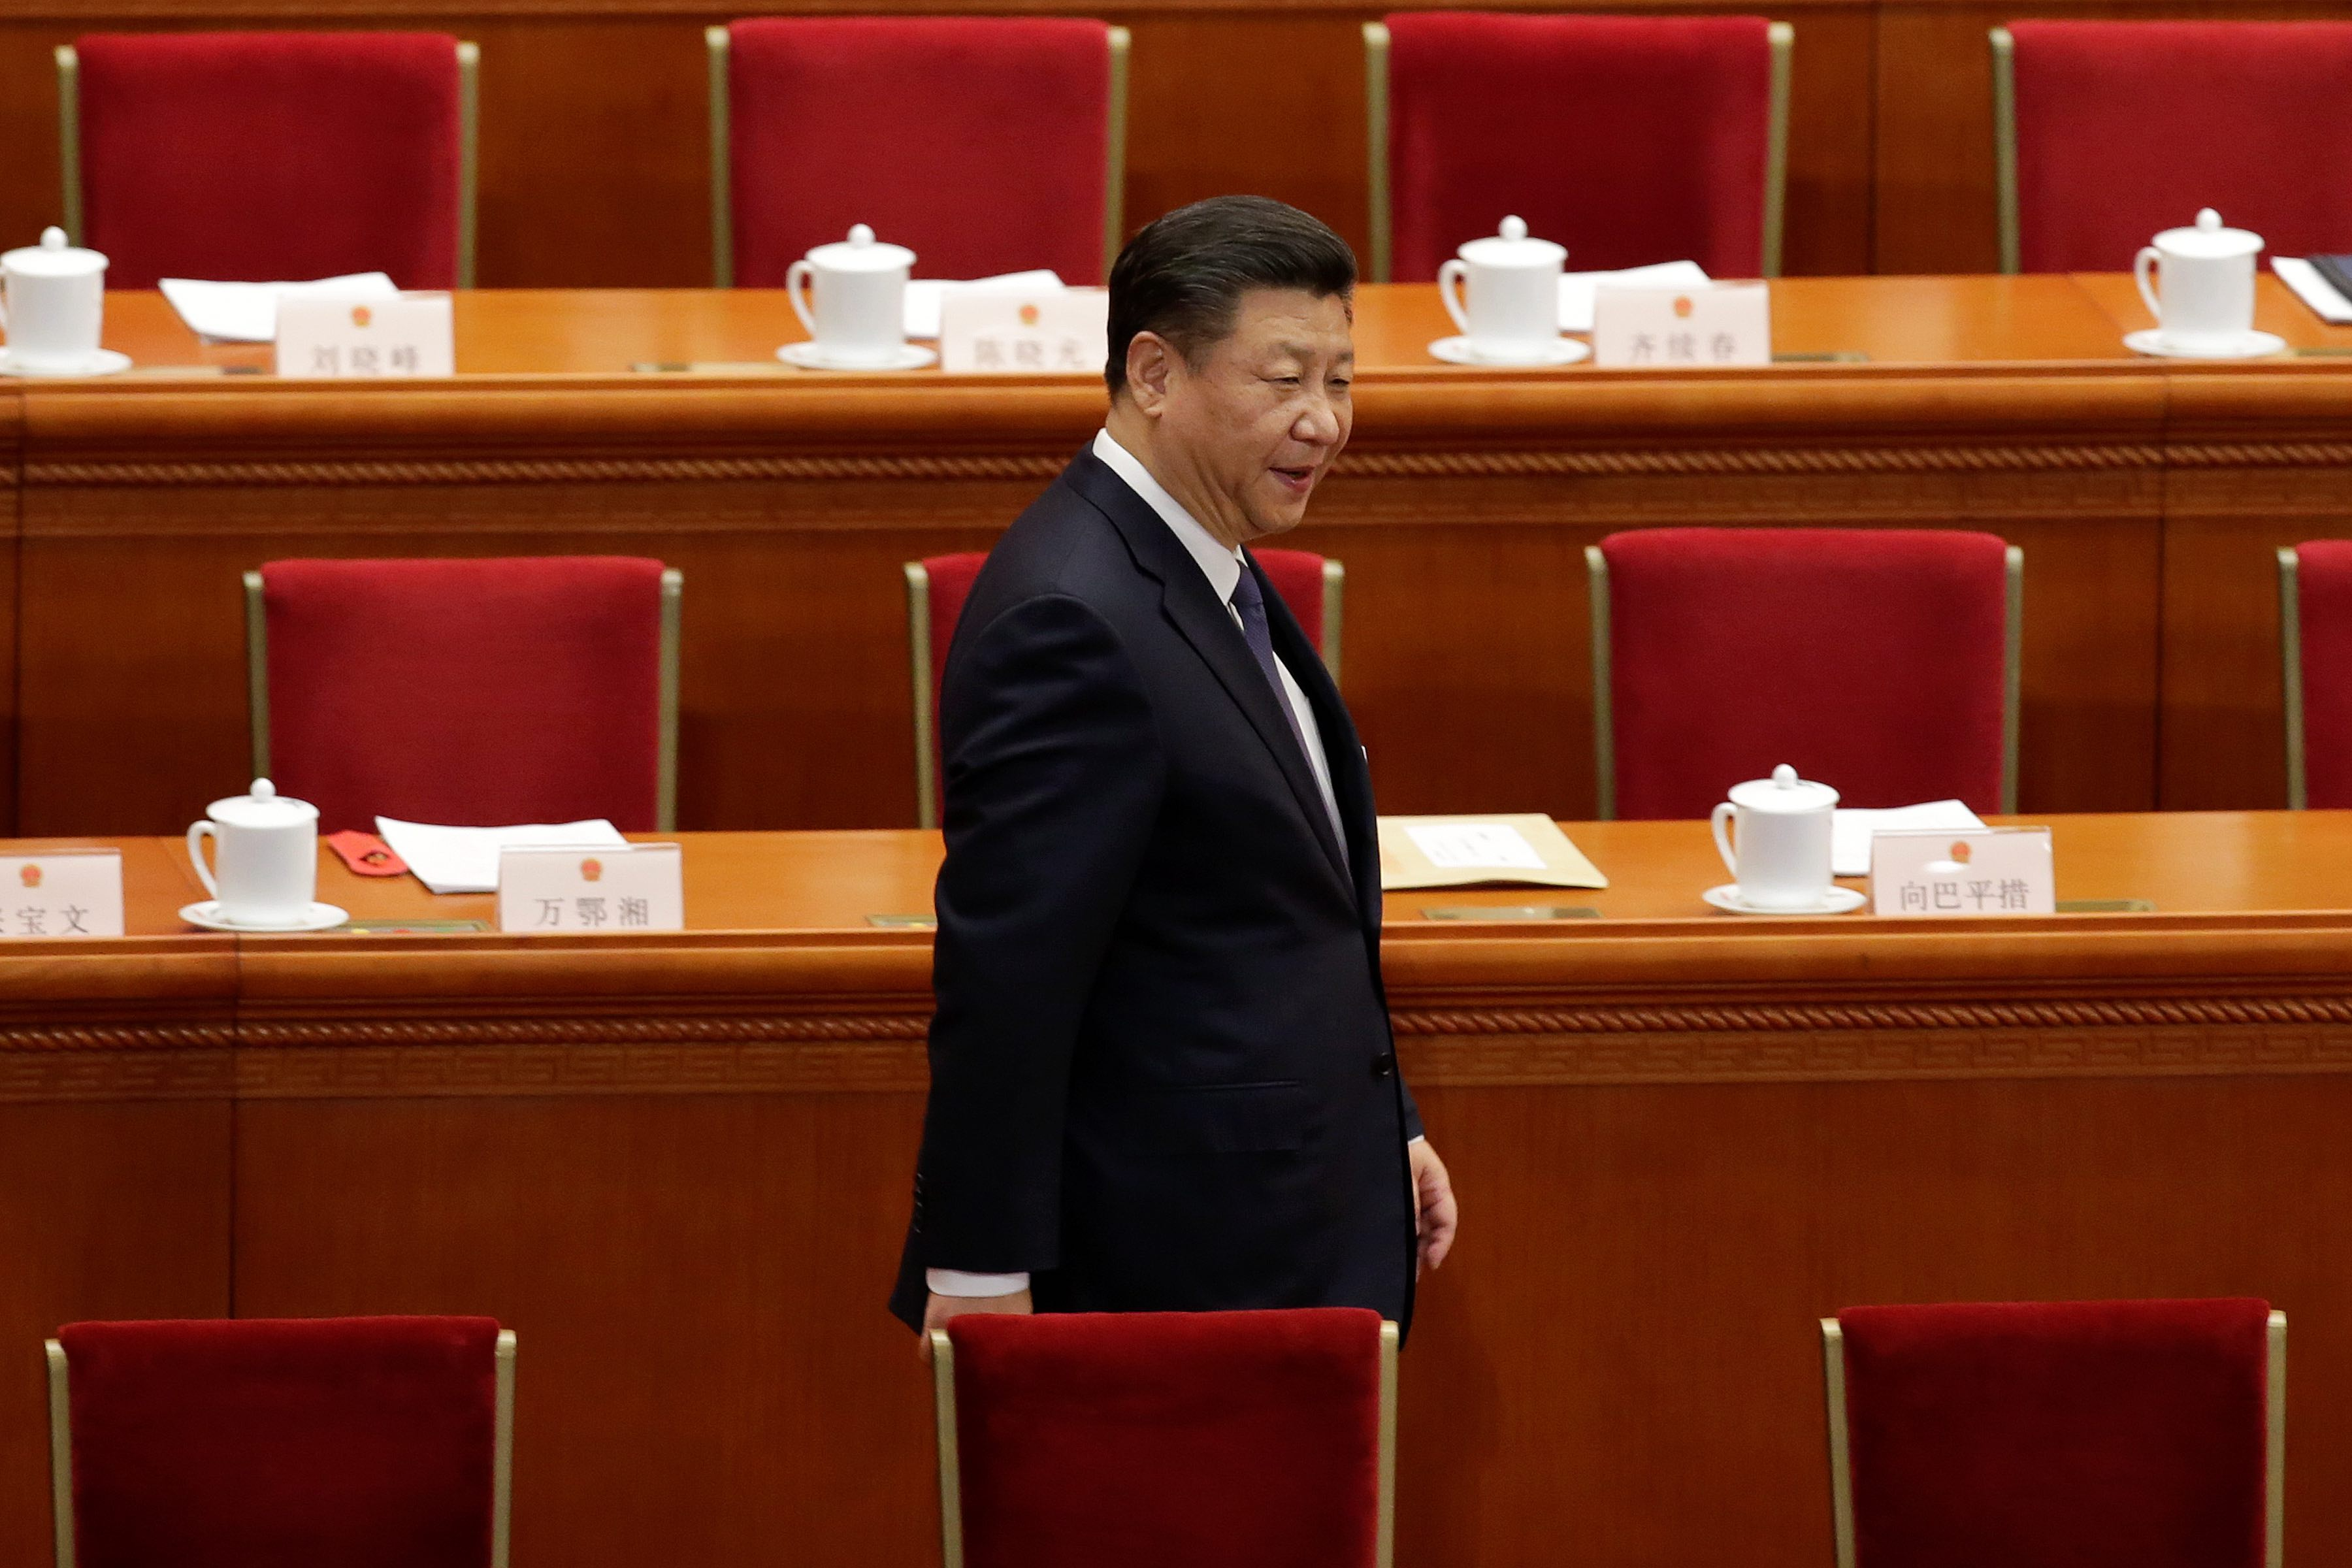 Chinese State Media Defends Removing Presidential Term Limits